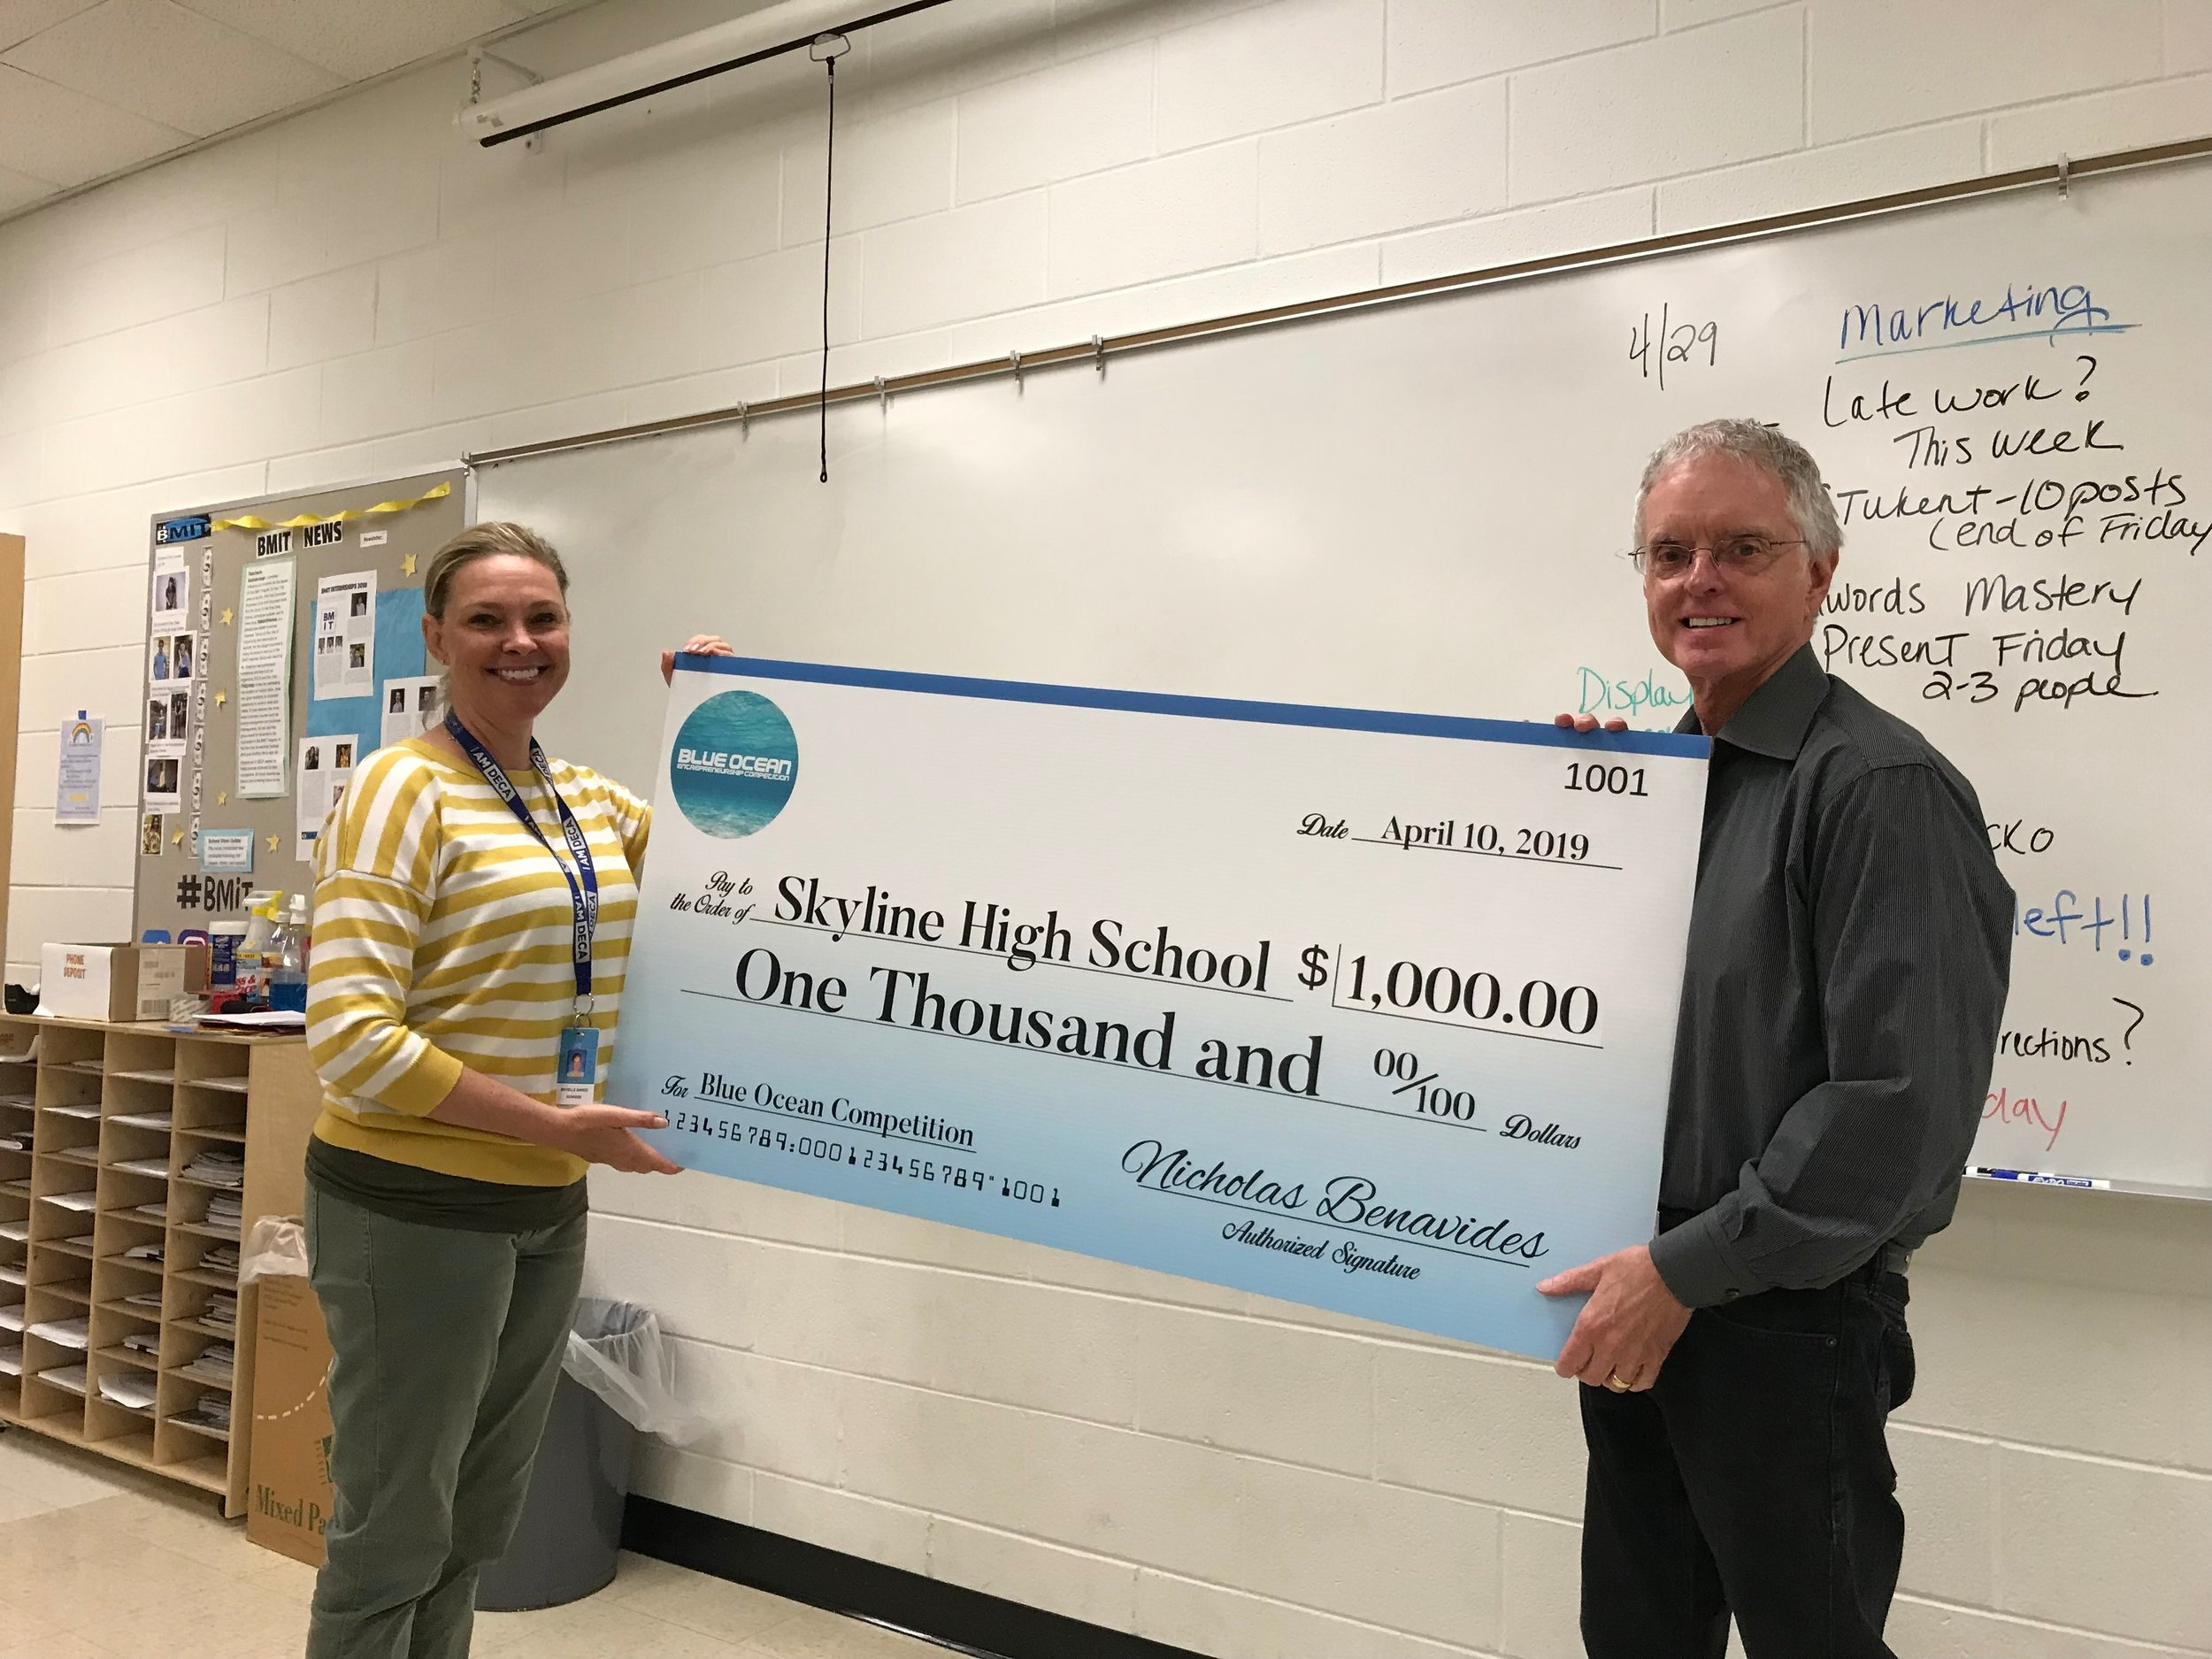 Skyline High School - Click on the image to see press coverage of Skyline High School's winning an award from the Blue Ocean Student Entrepreneur Pitch Competition.Ted Dacko, Executive Director, presenting the check to Michelle Wargo of Skyline High School Ann Arbor, Michigan